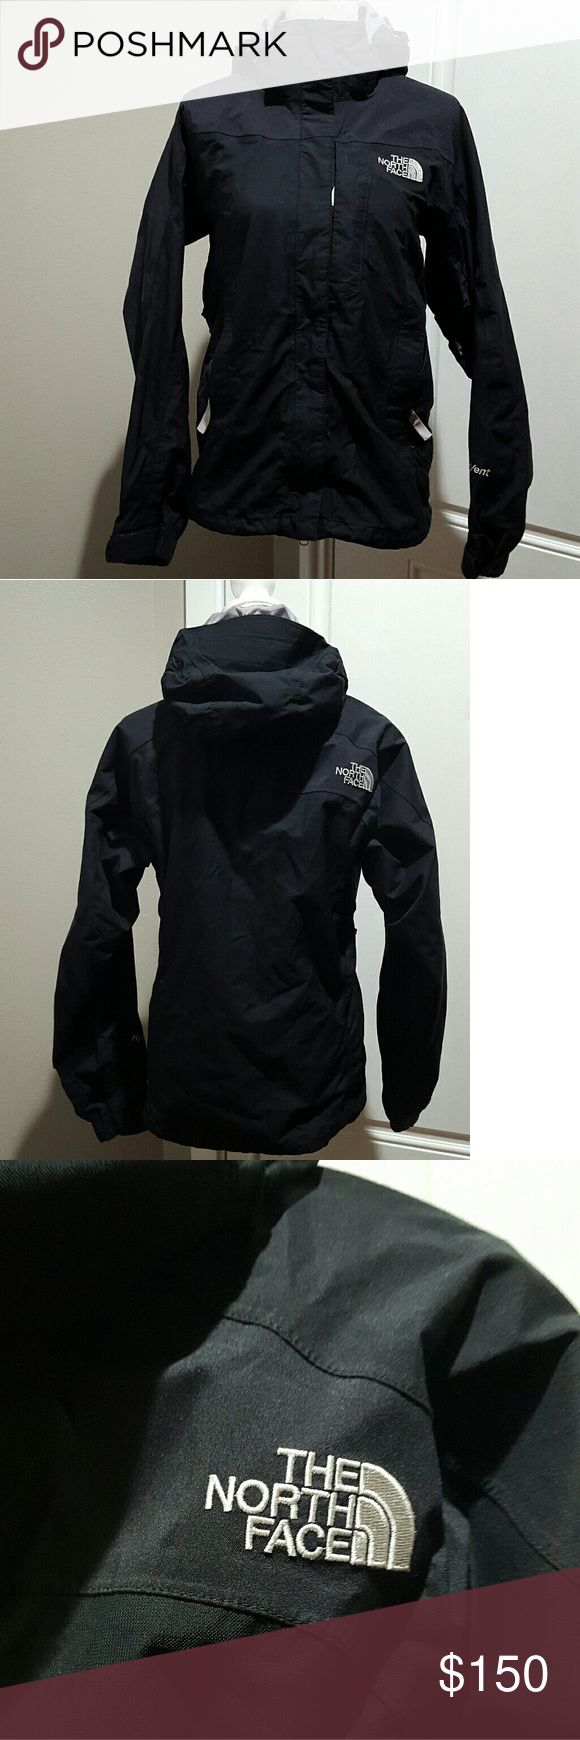 Women's black North Face snowboard/ski jacket, Med Women's black The North Face ski/snowboard jacket, size medium. No stains or tares, has a snow shield and waist adjuster. There is a small patch shown in photo where velcro attached to it when put in the washer. The North Face Jackets & Coats